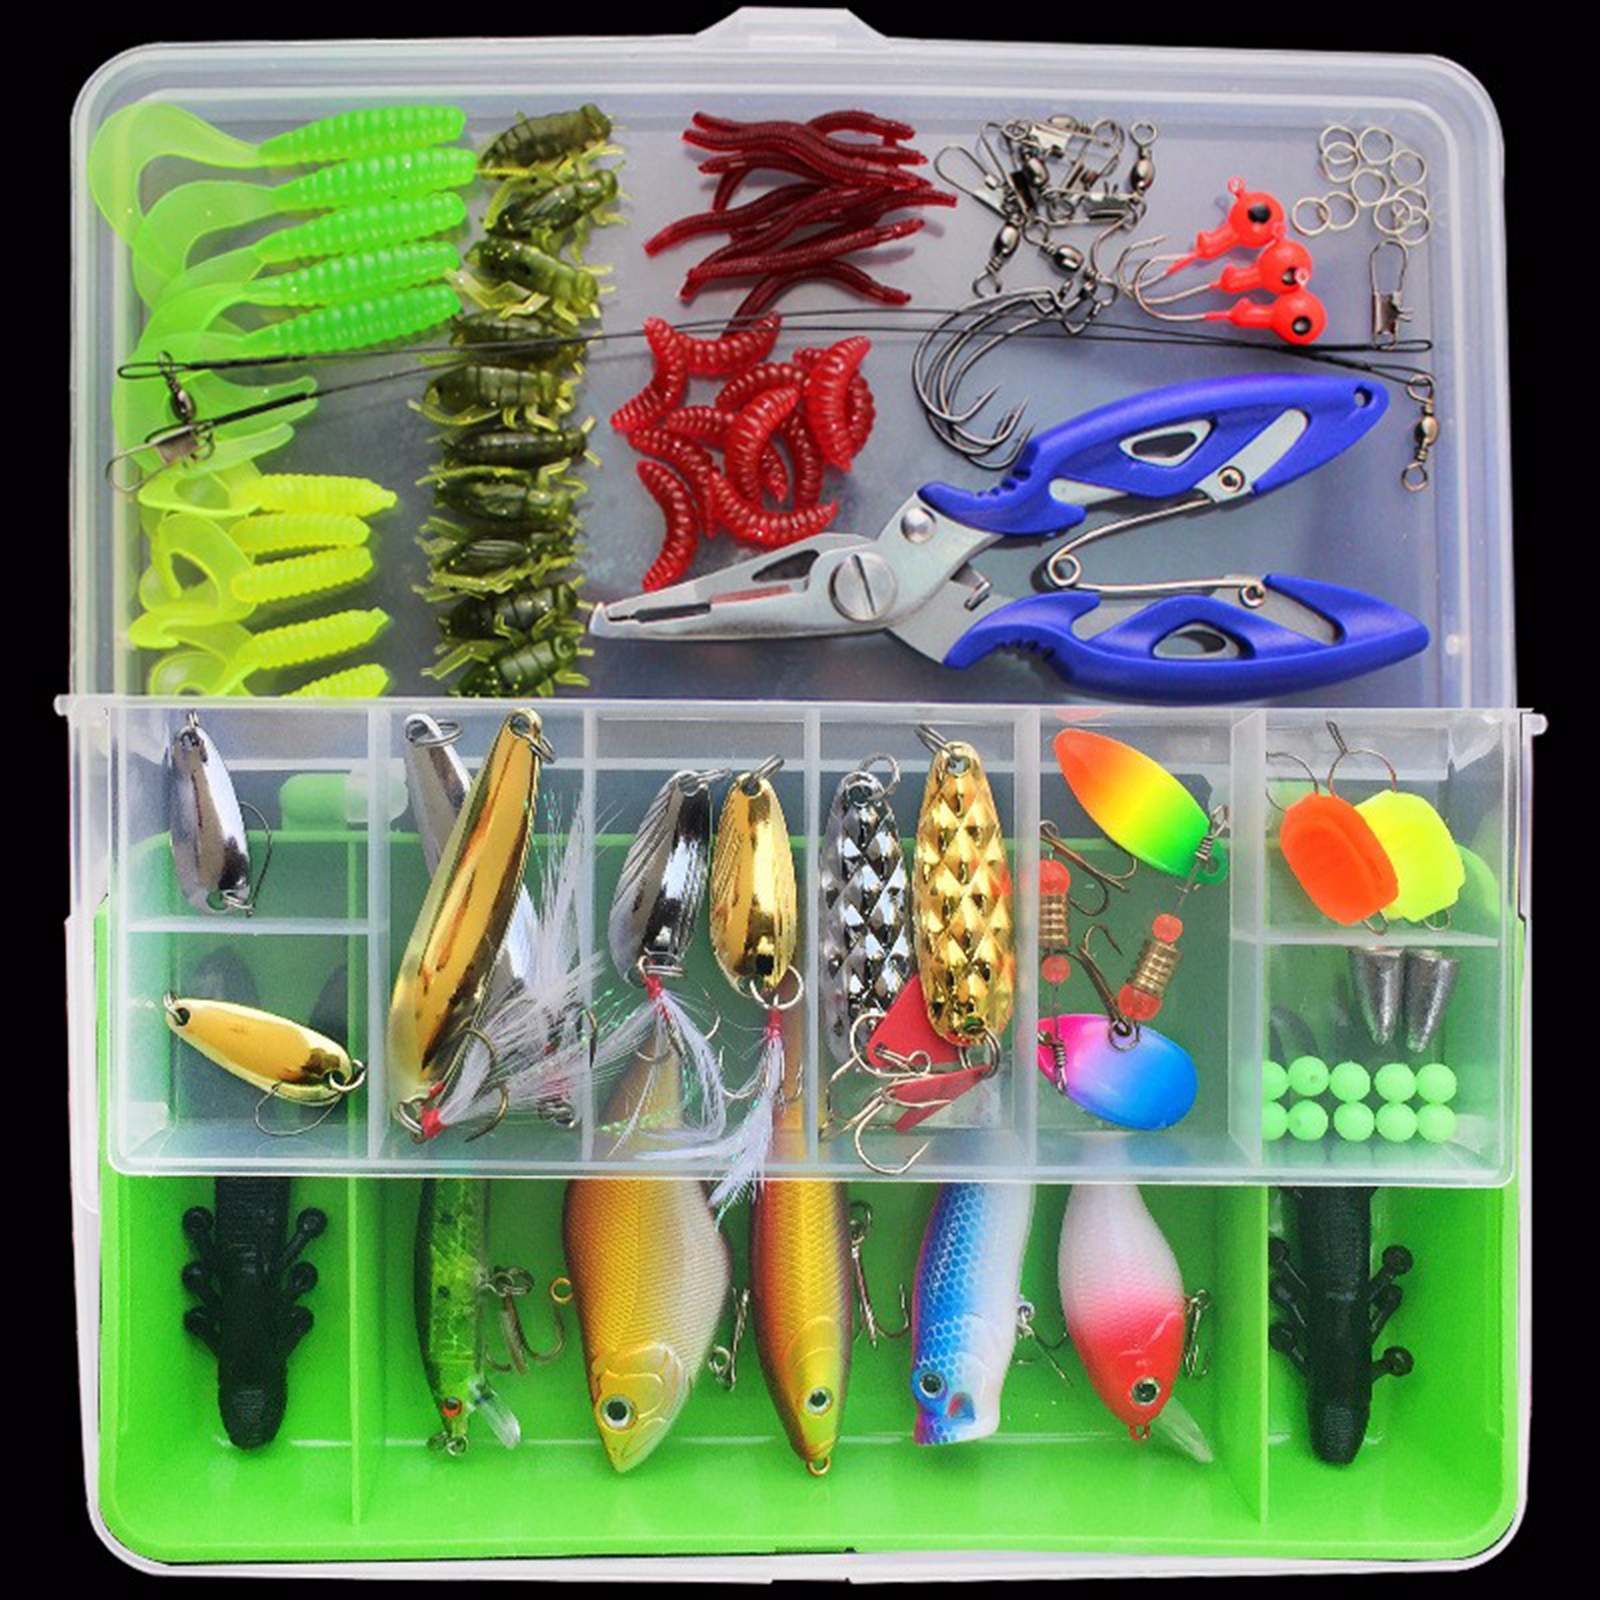 Fishing Accessories 100Pcs Fishing Kit Hard Soft Bait Lure Fishhooks Tools Tackle Box Set for Saltwater & Freshwater Fishing Color:green